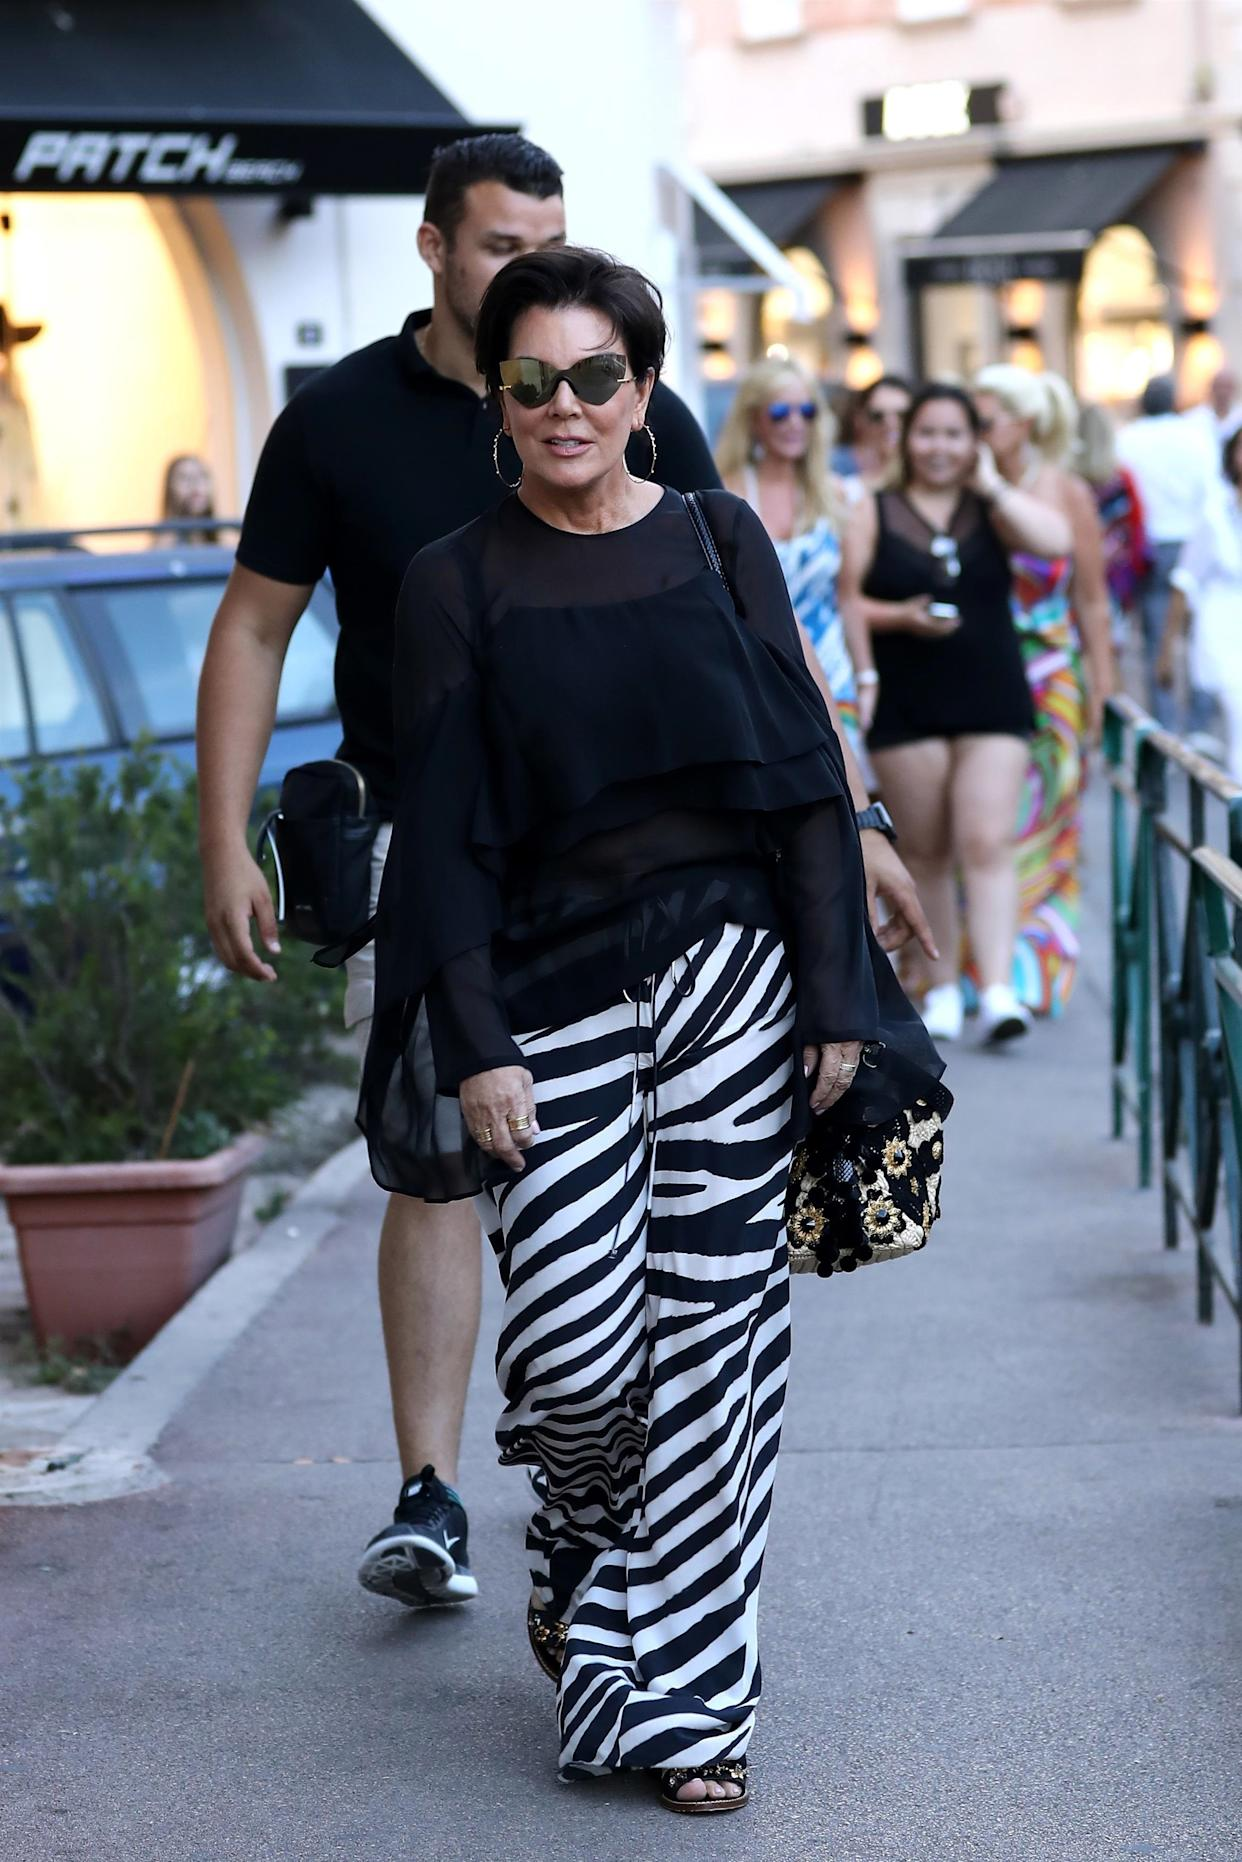 ** RIGHTS: ONLY UNITED STATES, CANADA ** Saint-Tropez, FRANCE  - TV personality Kris Jenner was seen doing shopping while on holiday in Saint-Tropez, France.Pictured: Kris JennerBACKGRID USA 10 JULY 2017 BYLINE MUST READ: Best Image / BACKGRIDUSA: +1 310 798 9111 / usasales@backgrid.comUK: +44 208 344 2007 / uksales@backgrid.com*UK Clients - Pictures Containing ChildrenPlease Pixelate Face Prior To Publication*